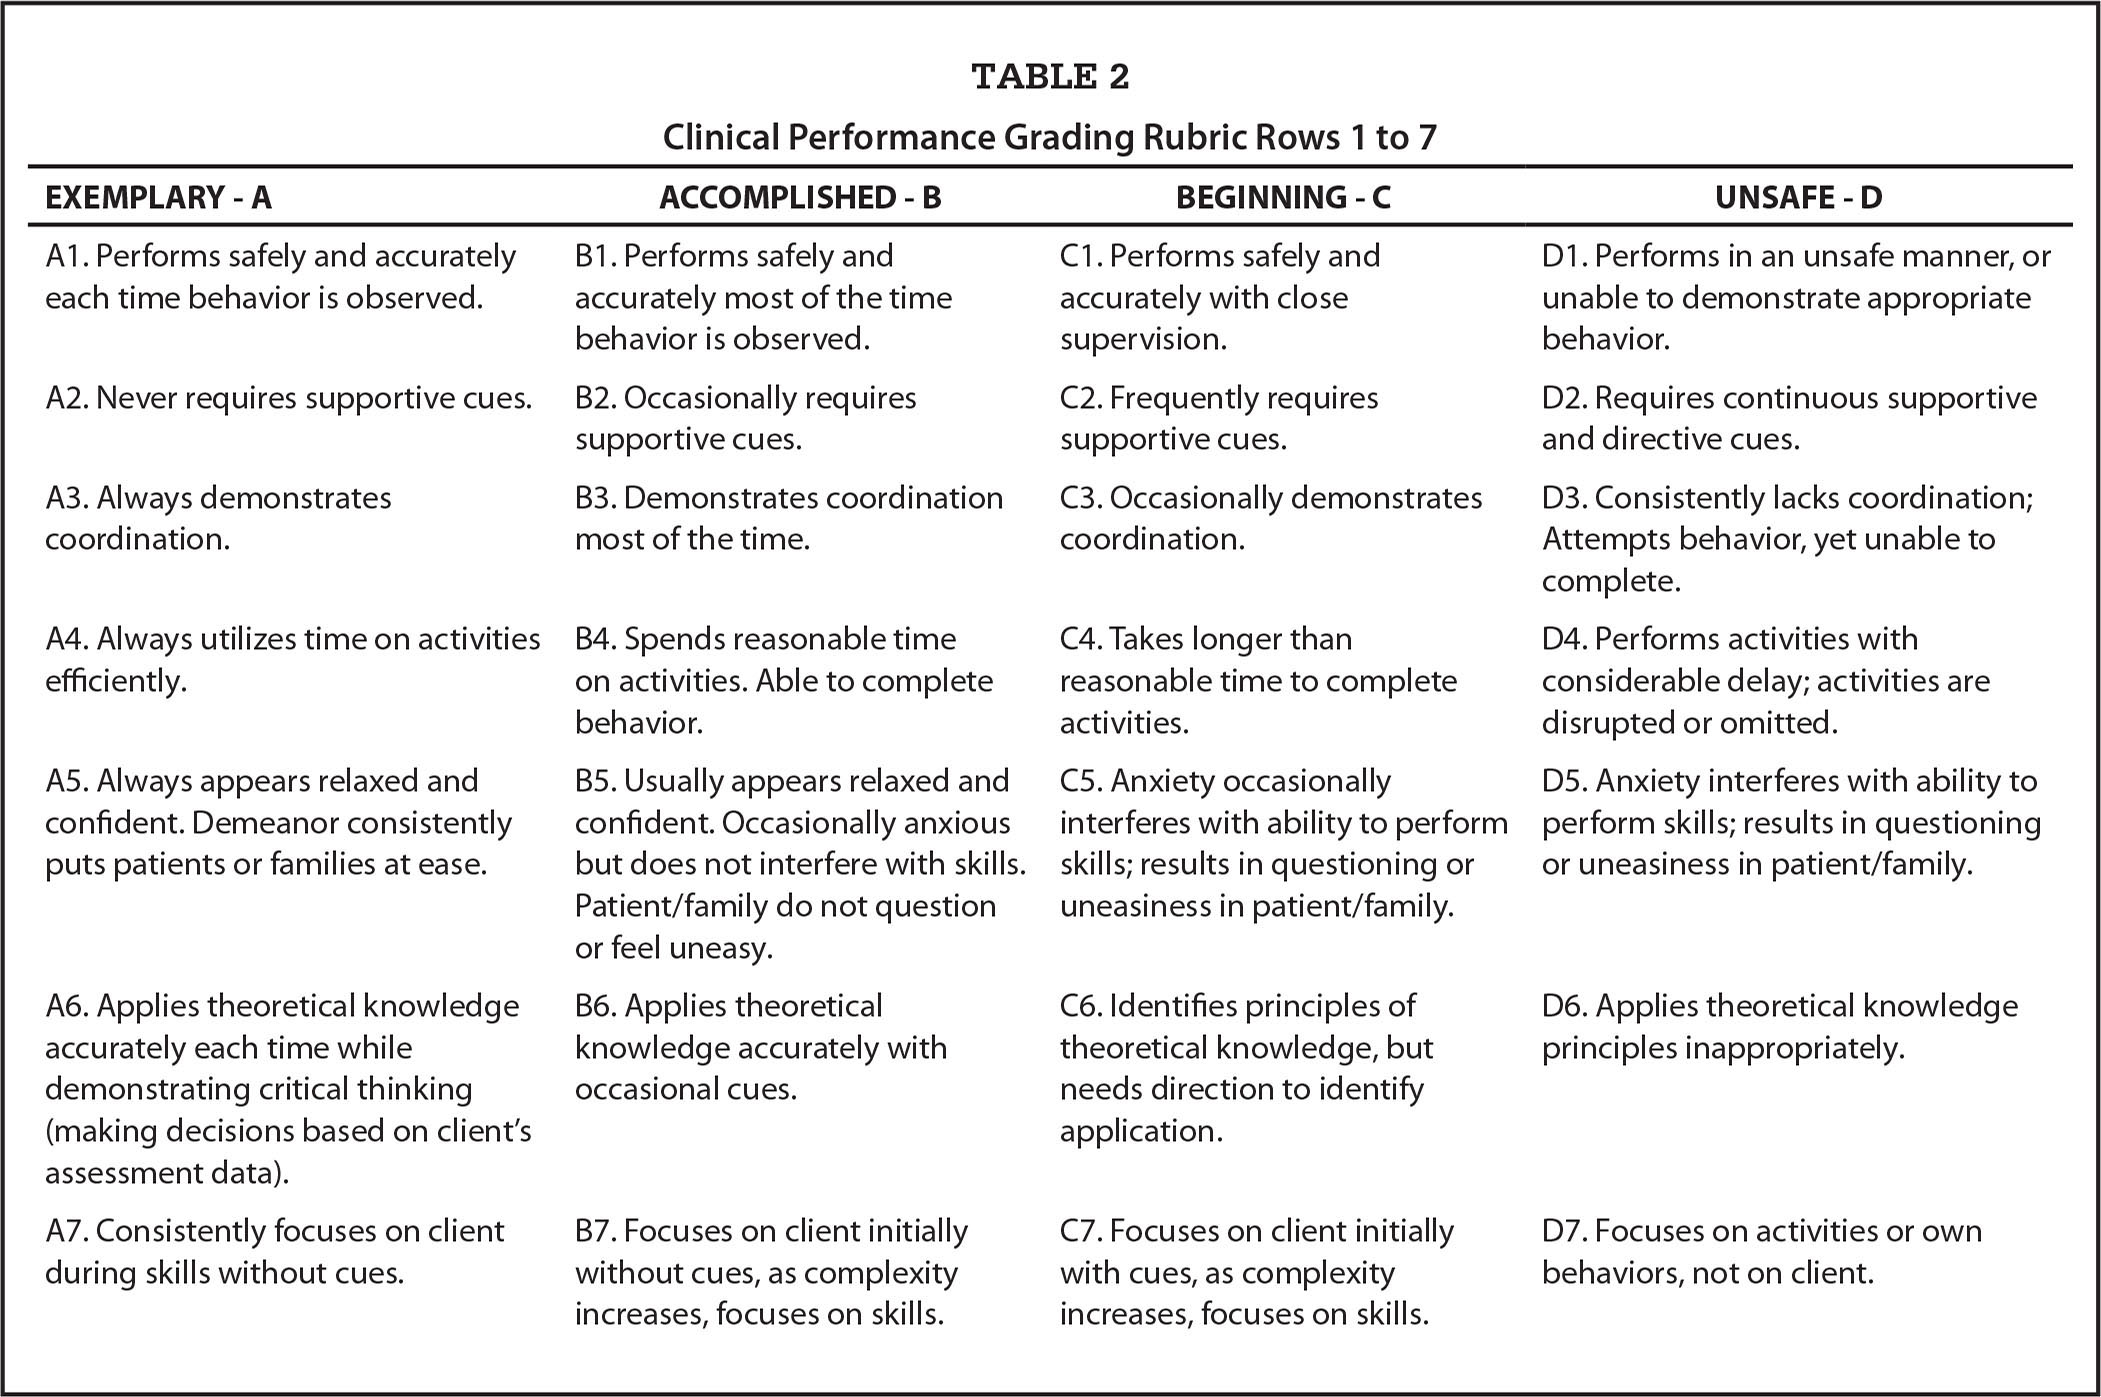 Clinical Performance Grading Rubric Rows 1 to 7